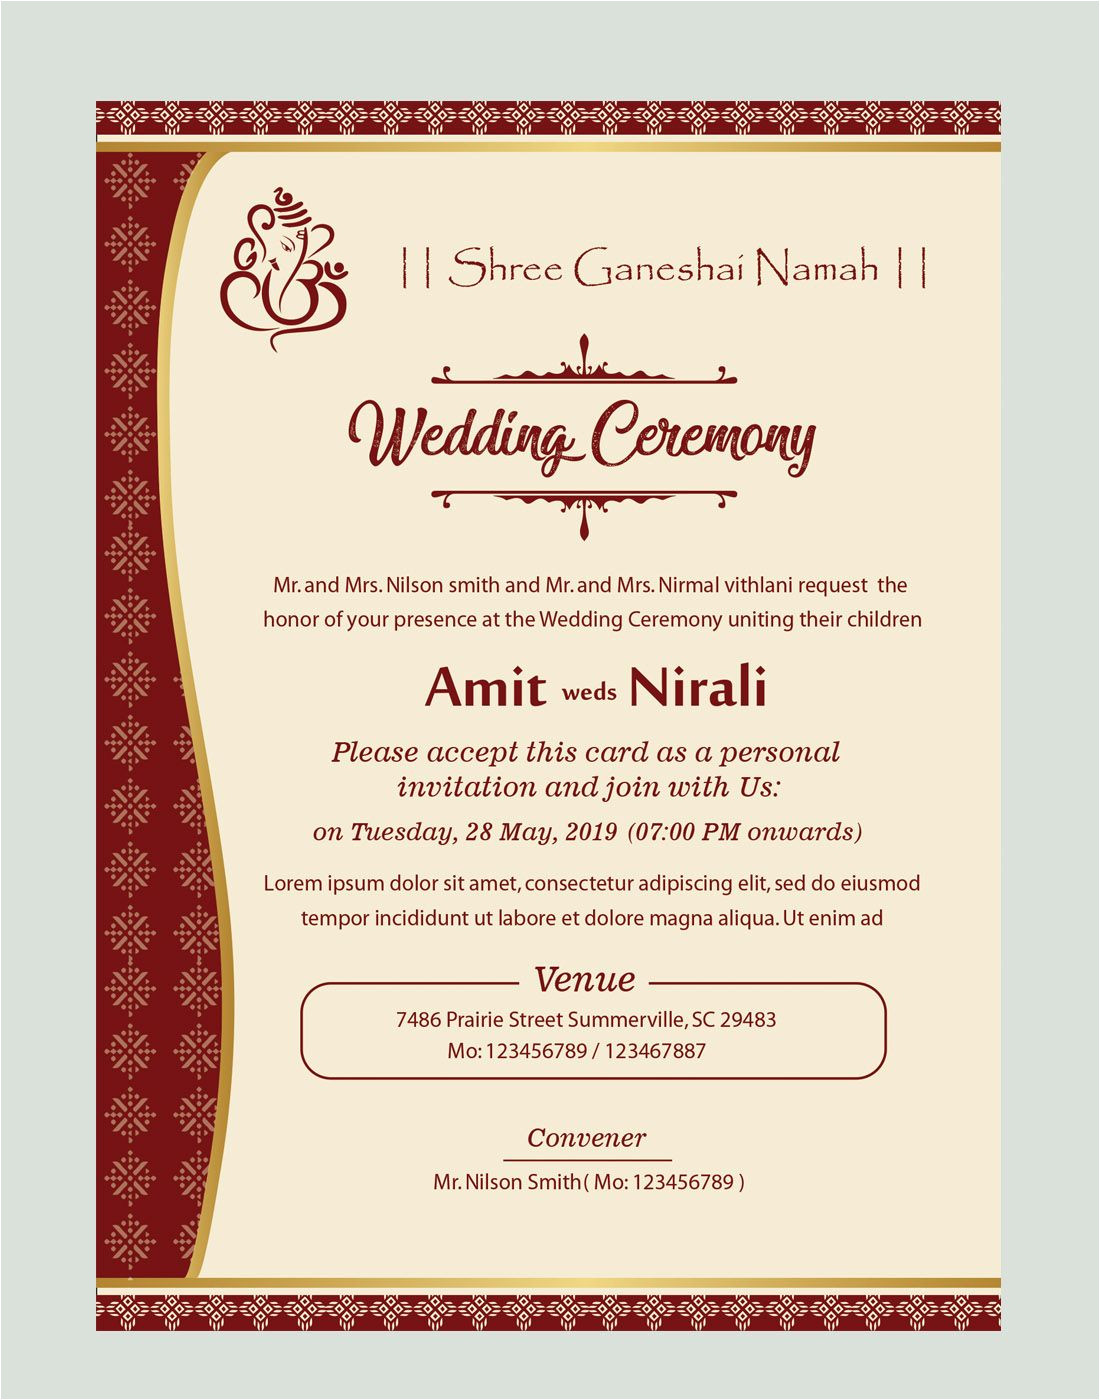 Wedding Card format In English Free Kankotri Card Template with Images Printable